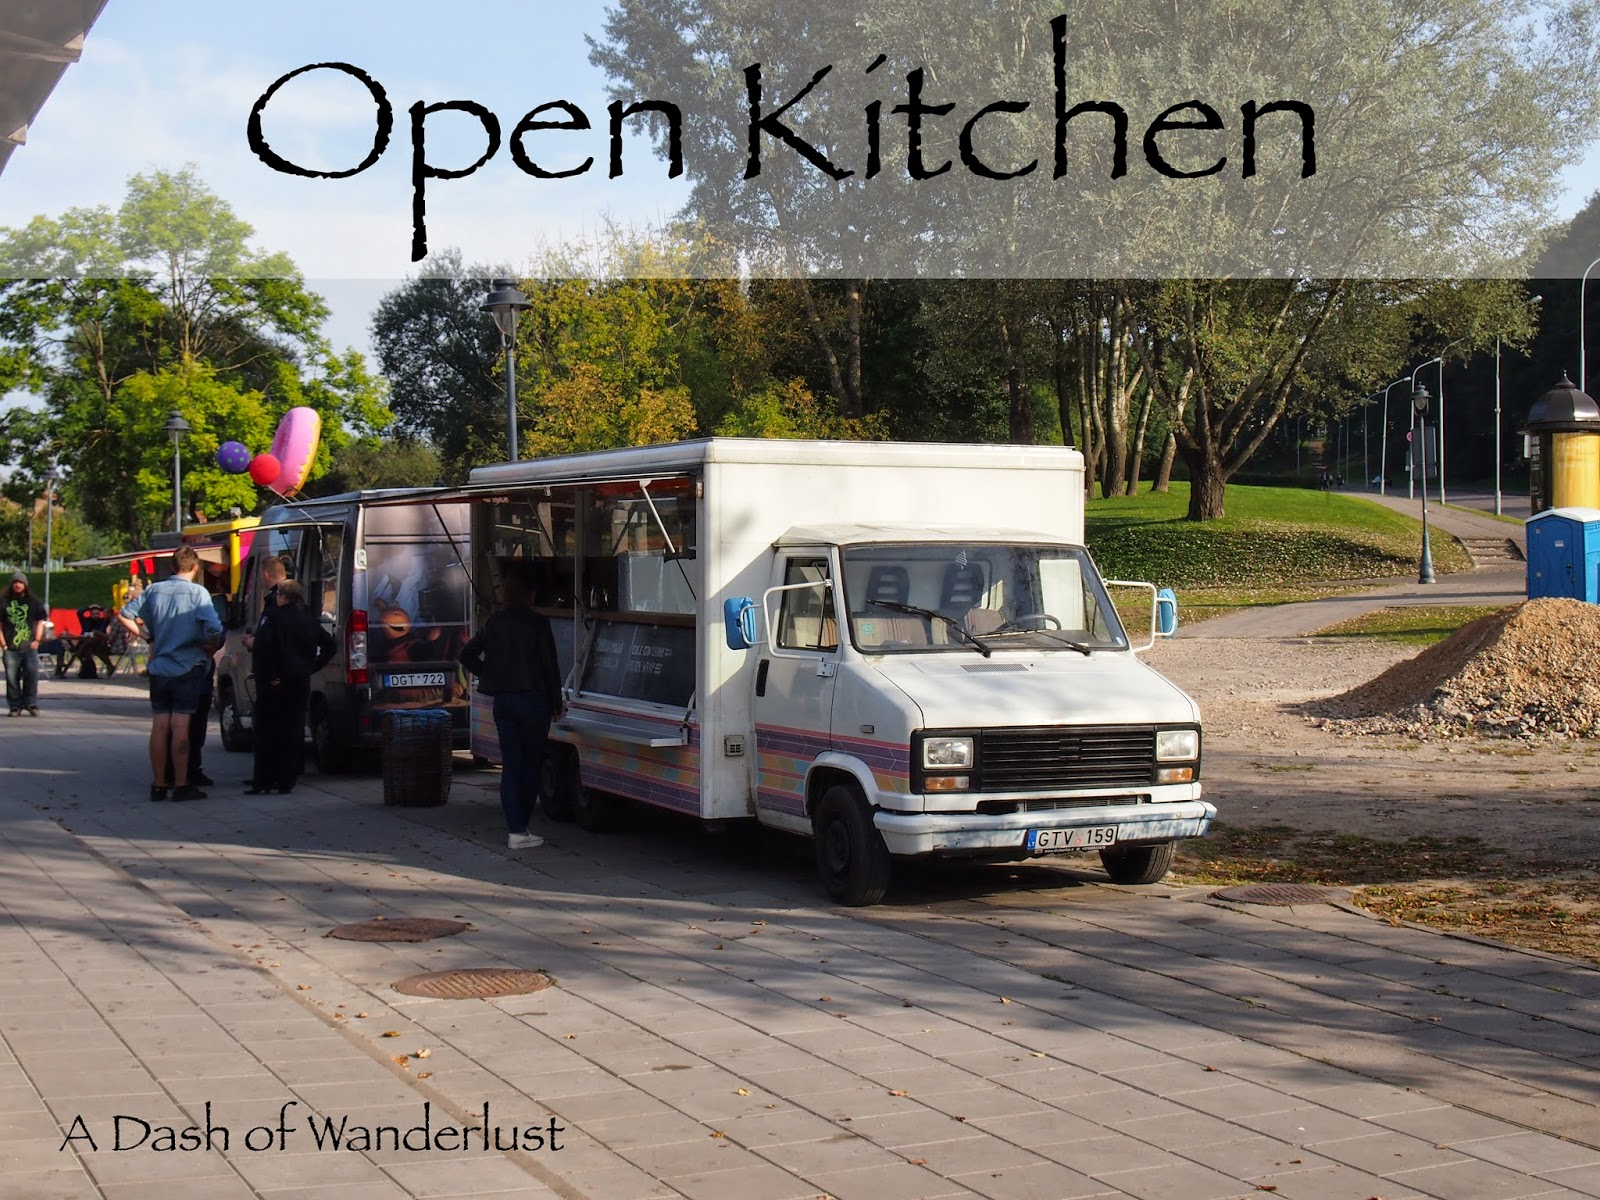 Open Kitchen, a collection of pop-up restaurant stalls outside in Vilnius, LT.